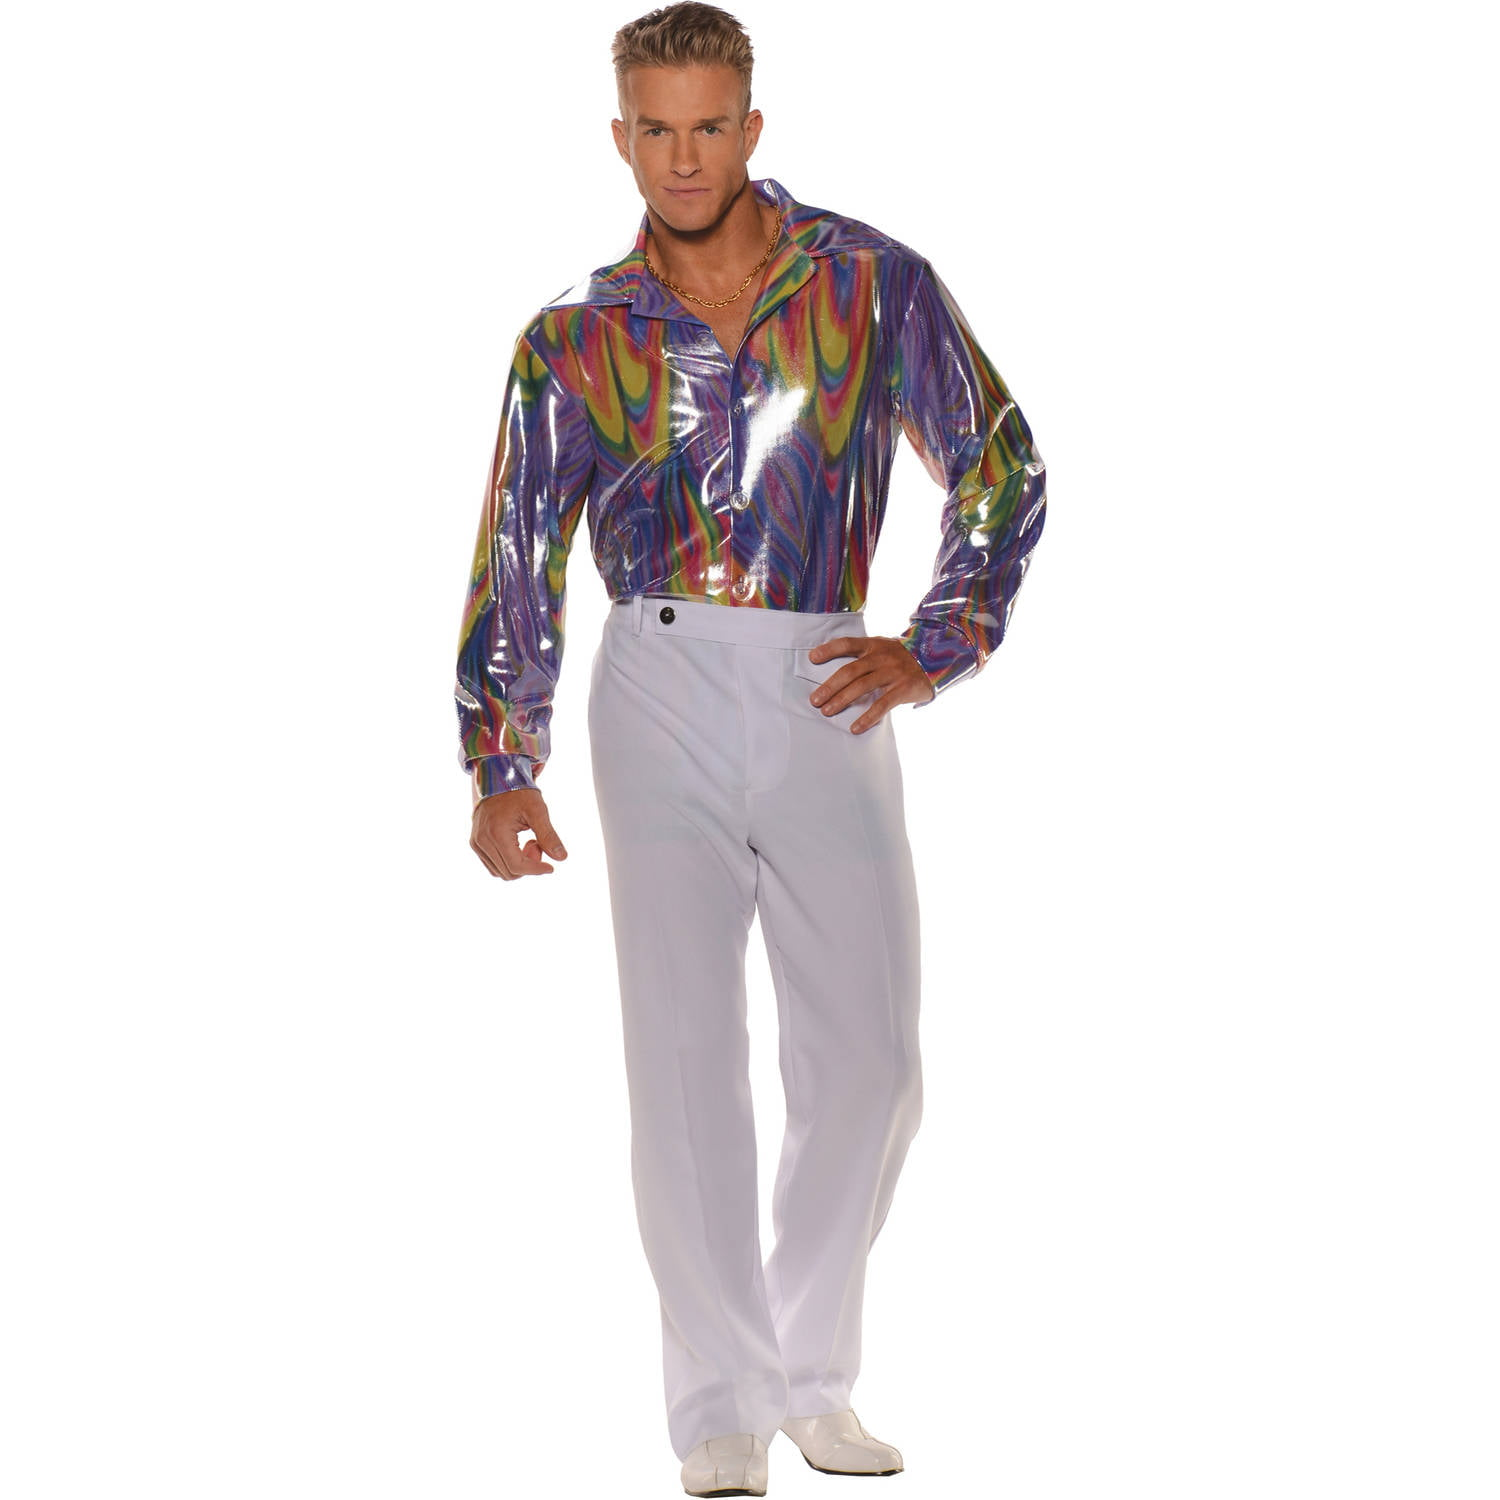 disco shirt men's adult halloween costume - walmart